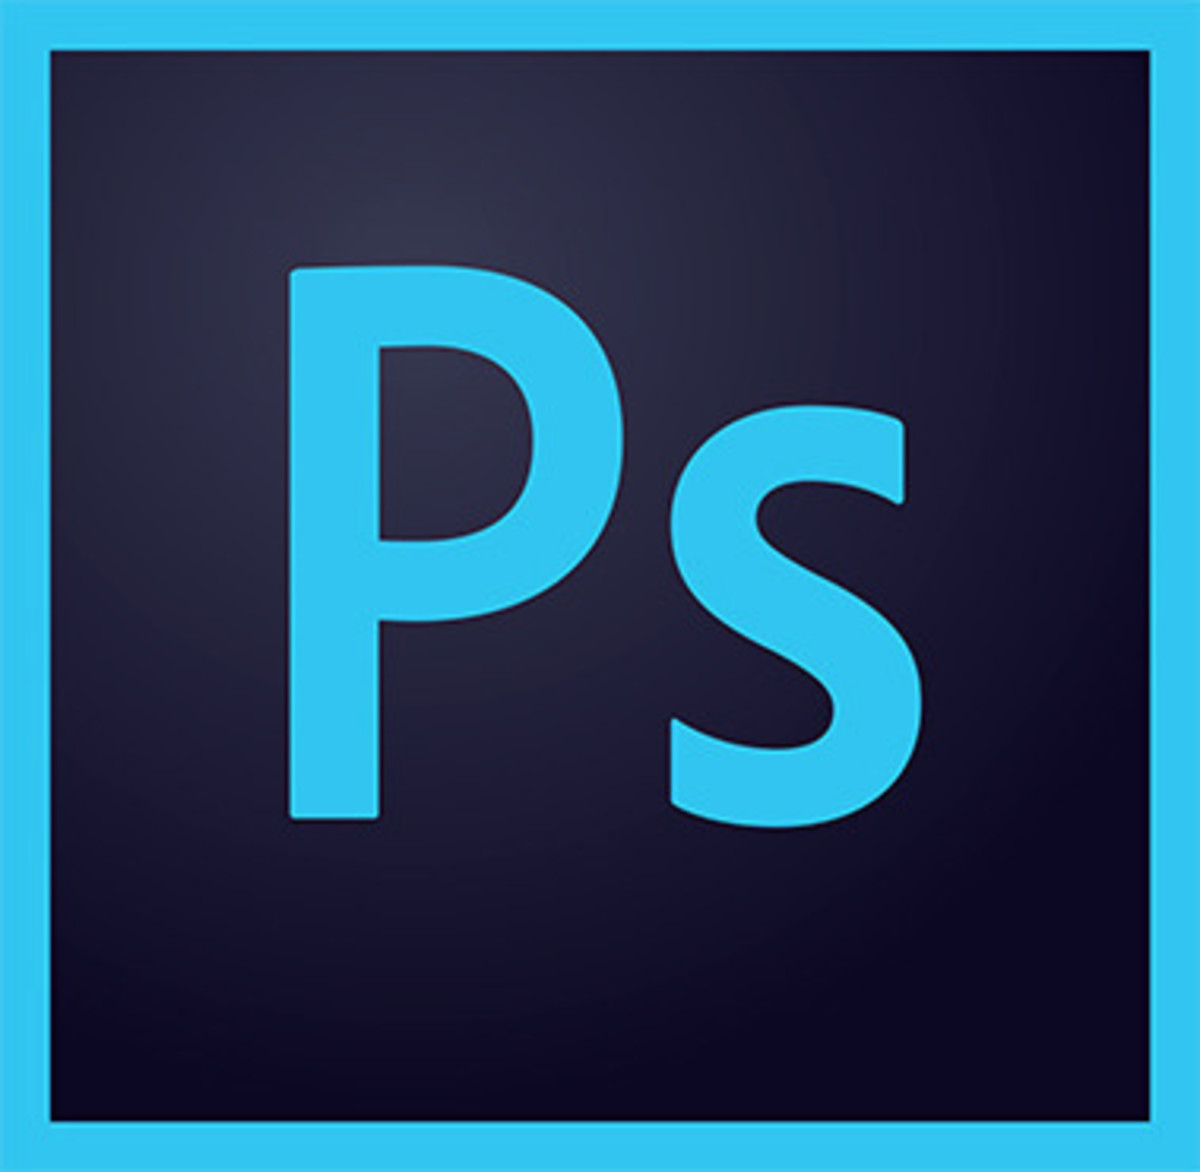 The above image is the logo for Adobe Photoshop